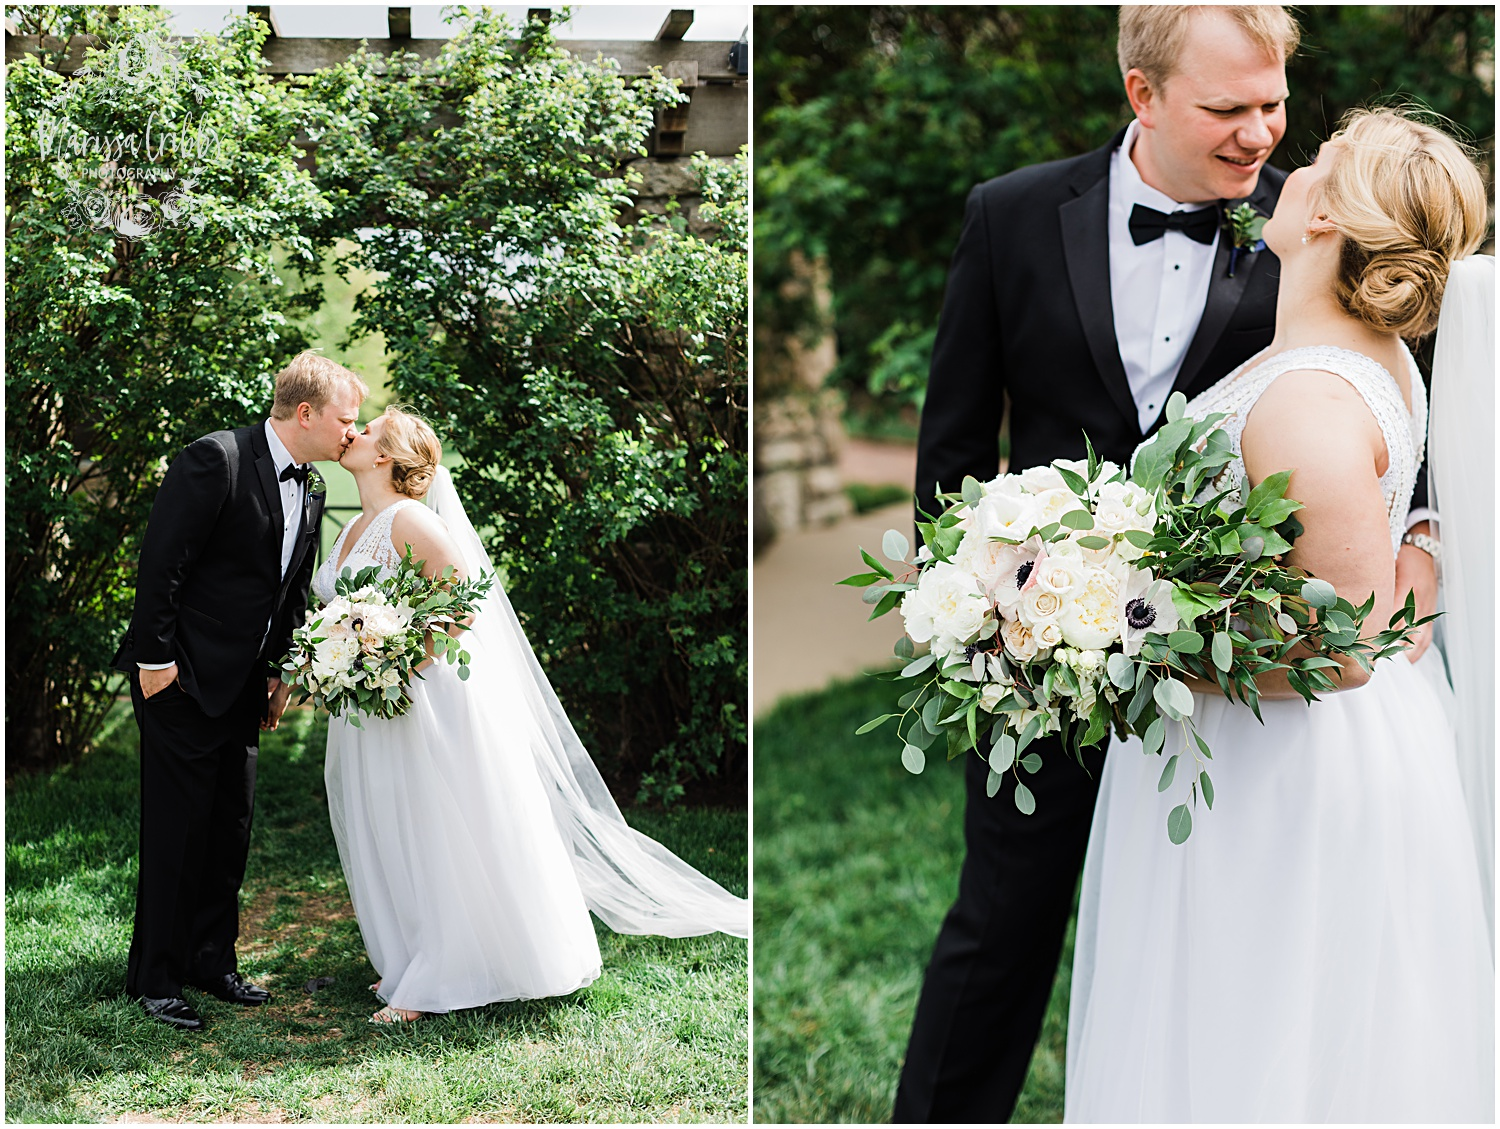 RACHEL & SCOTT MARRIED | MARISSA CRIBBS PHOTOGRAPHY_7689.jpg